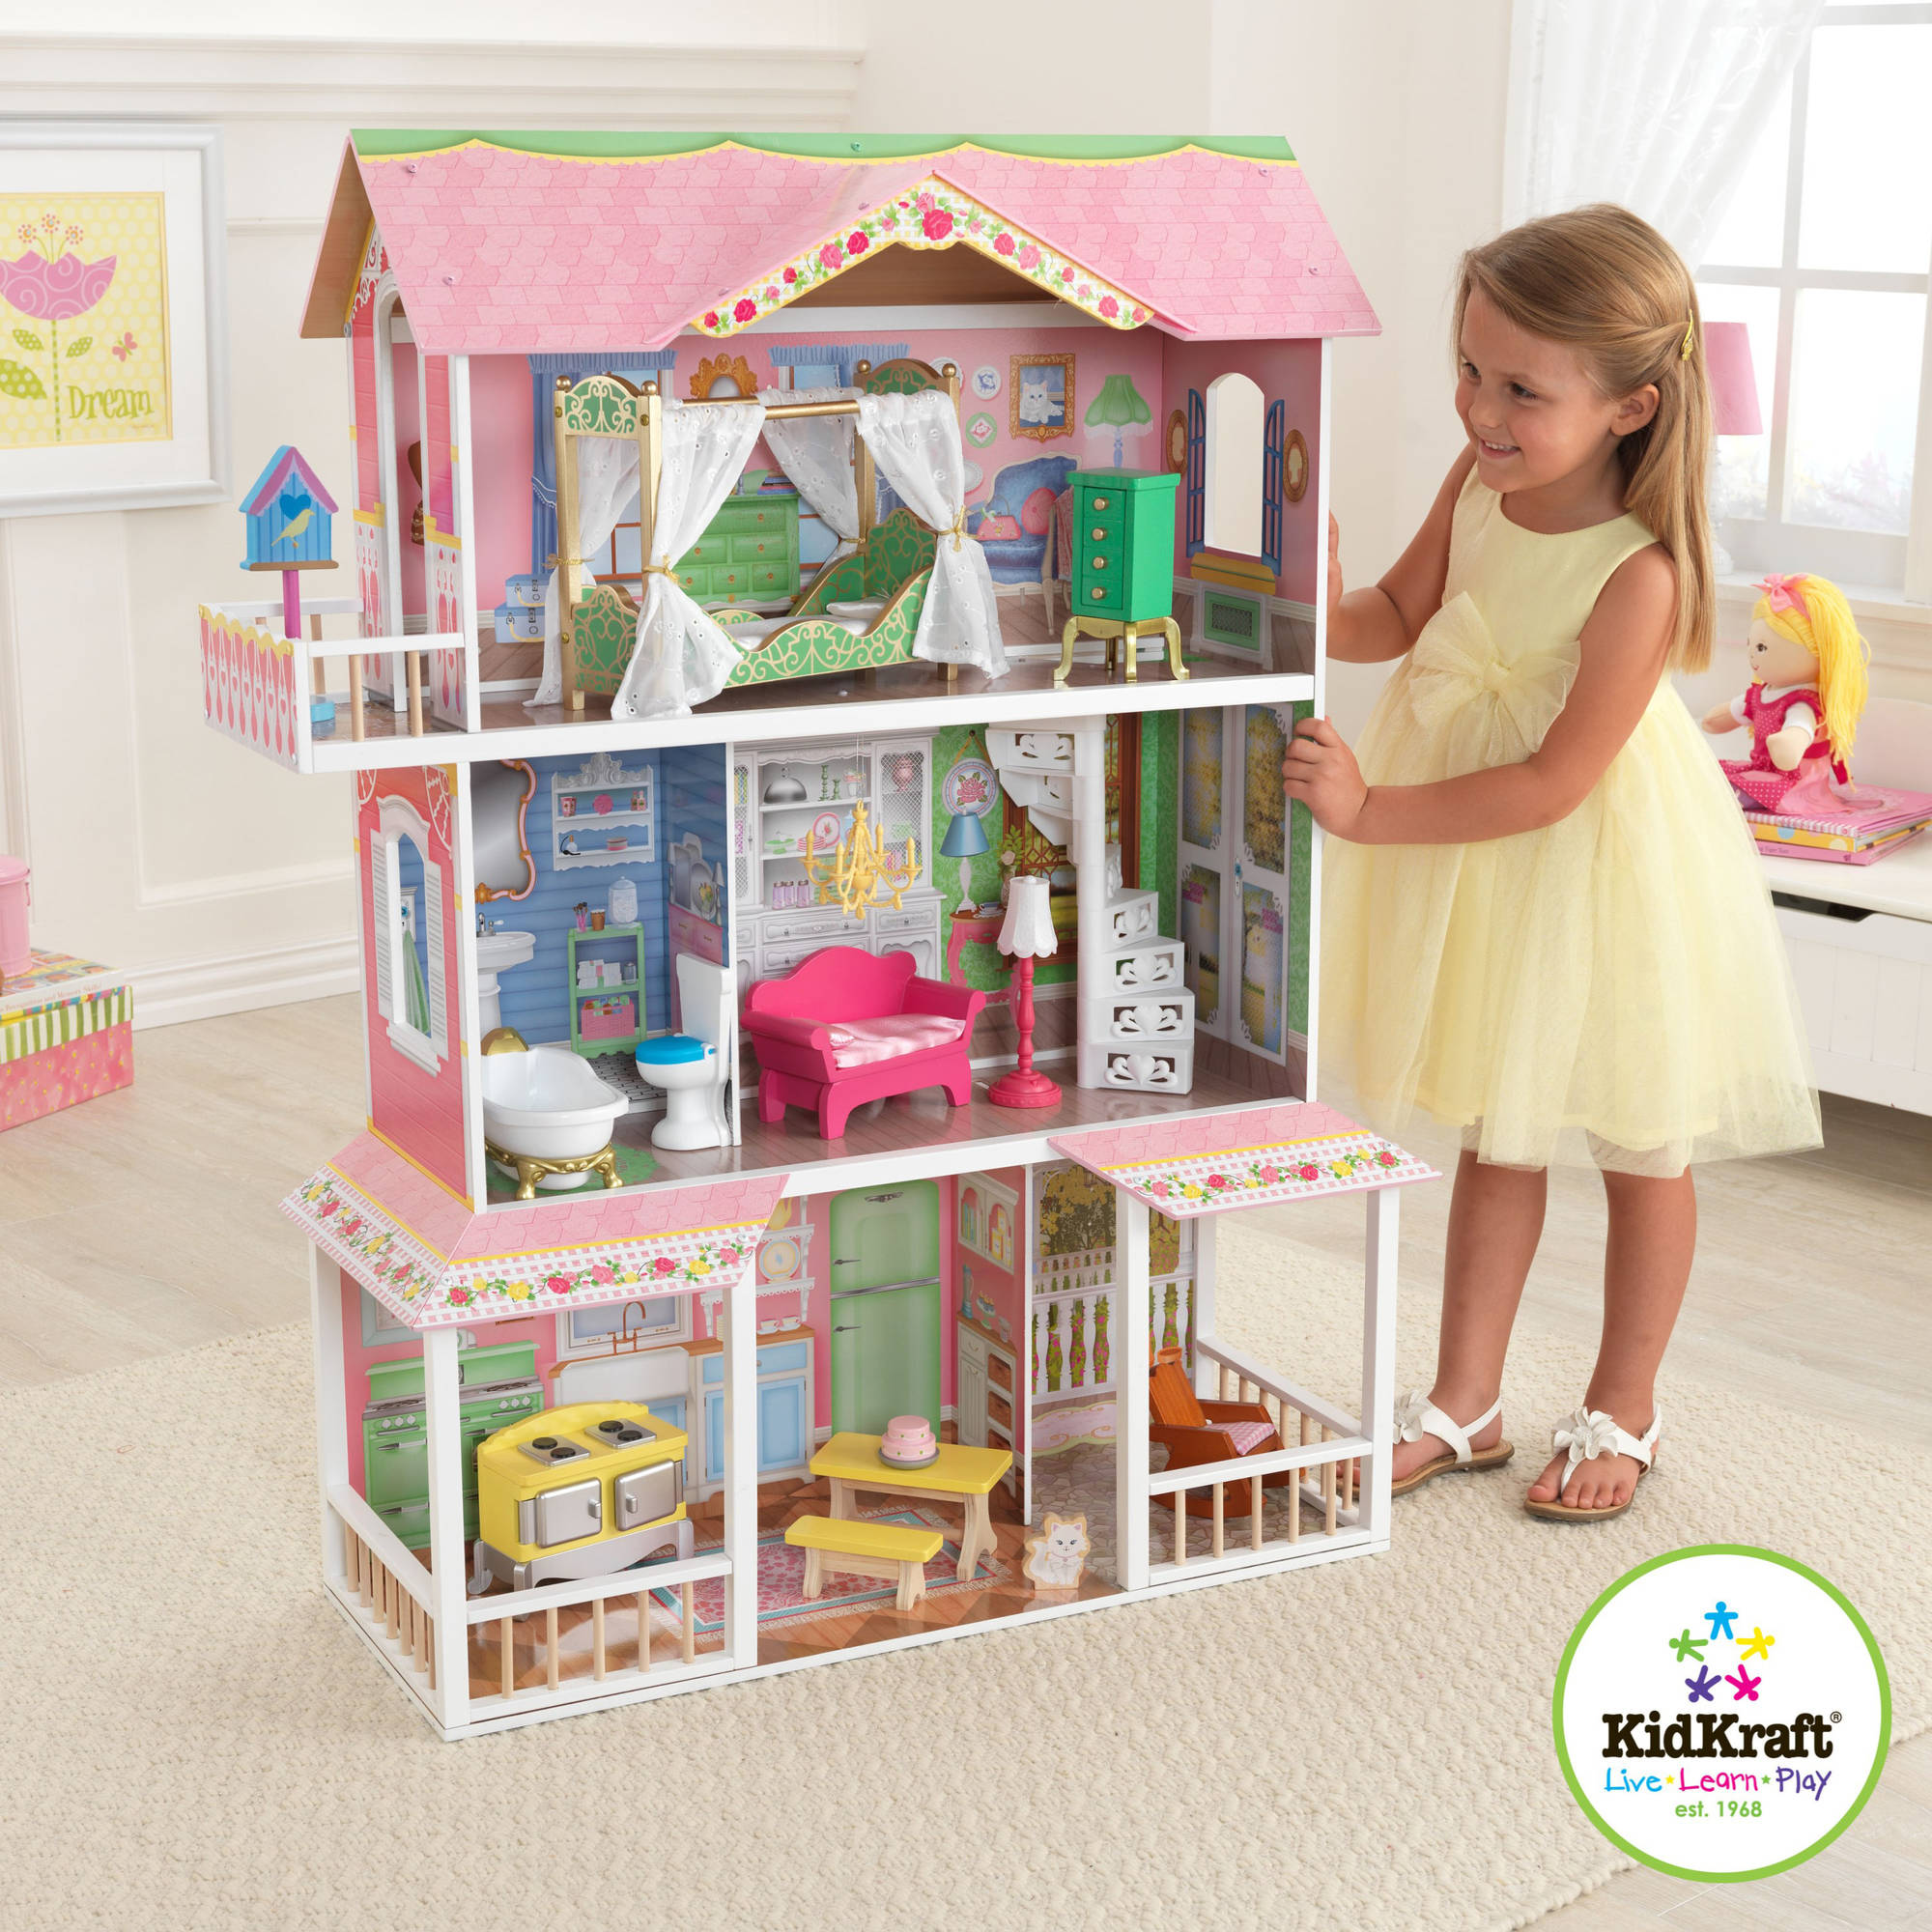 KidKraft Sweet Savannah Wooden Dollhouse with 13 Pieces of Furniture by KidKraft